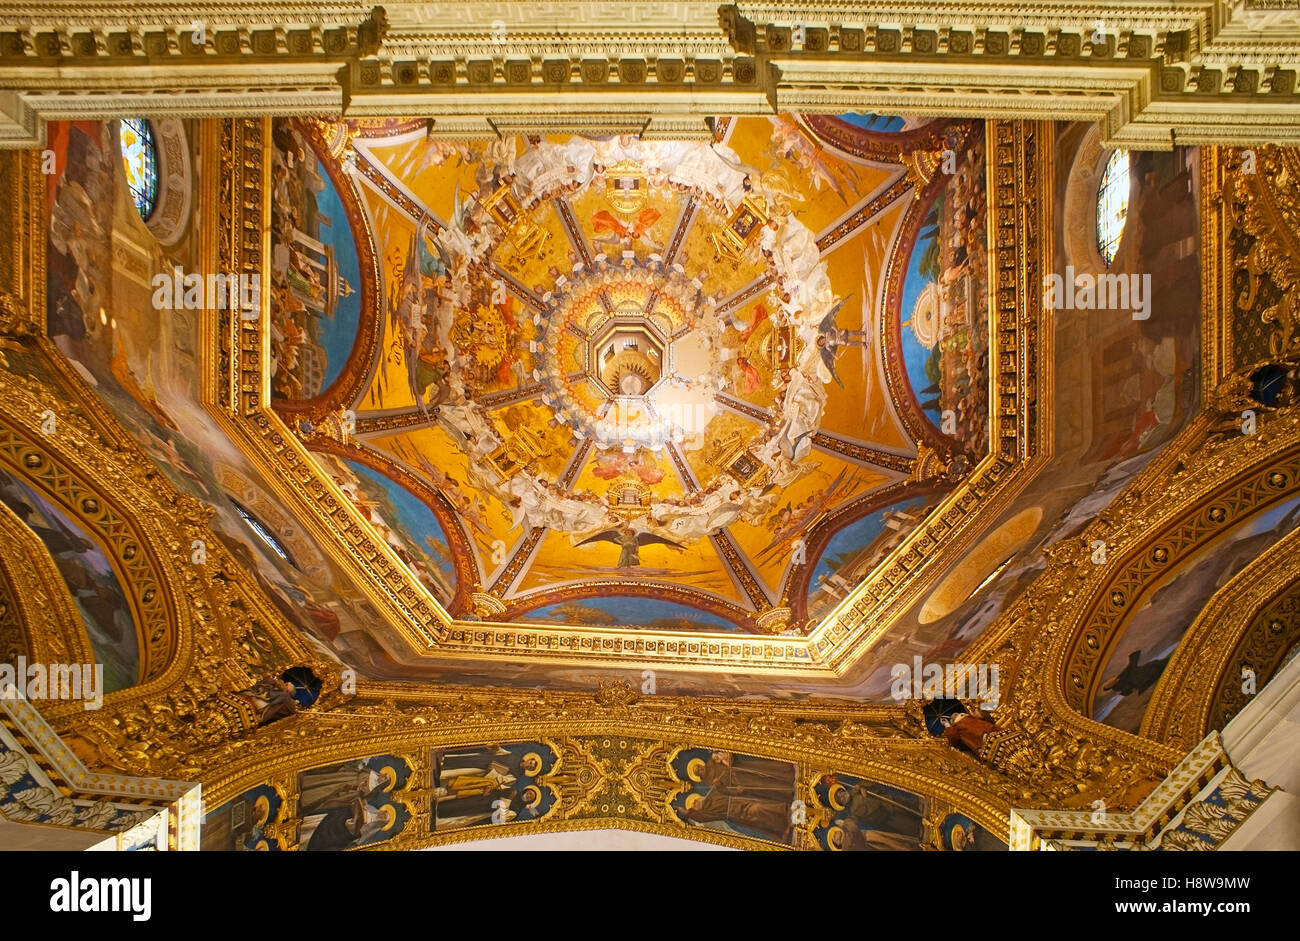 The painted cupola of Basilica of Santa Casa, the famous Shrine of the Holy House of Virgin Mary - Stock Image